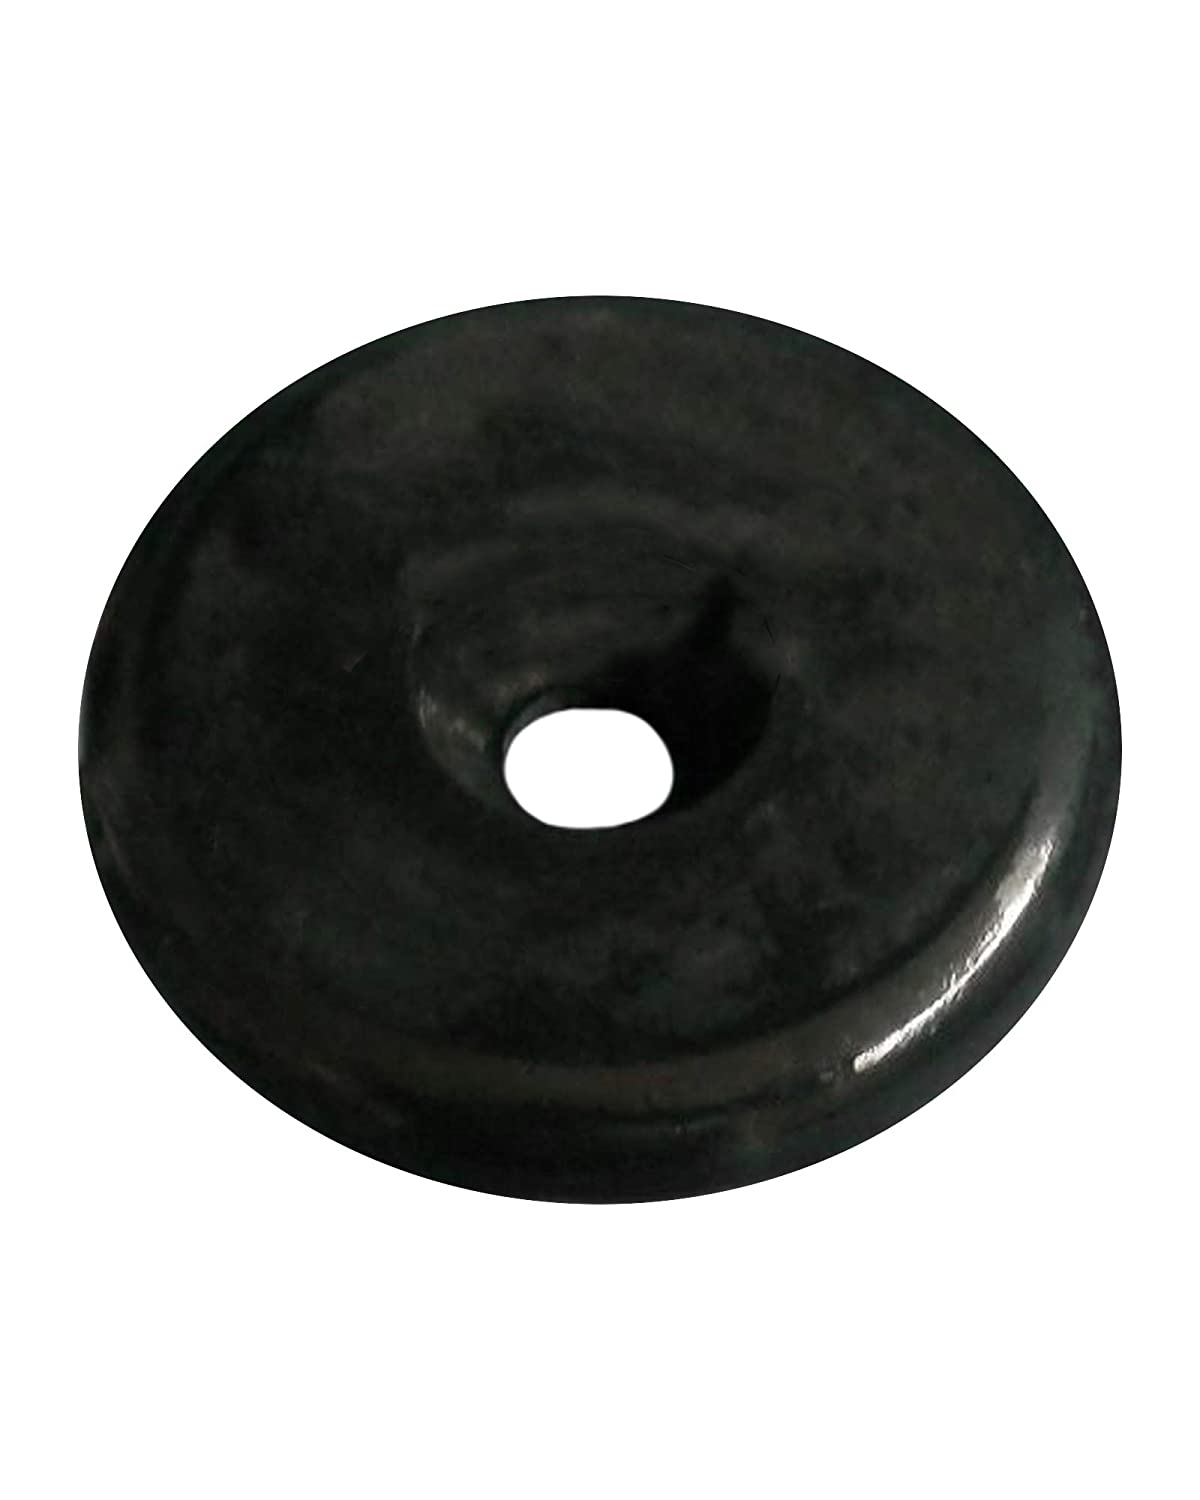 16 pcs 1 1 8 black nylon table chair disk glides leg cup insert glide end caps slide screw nail protector patio furniture replacement parts smooth